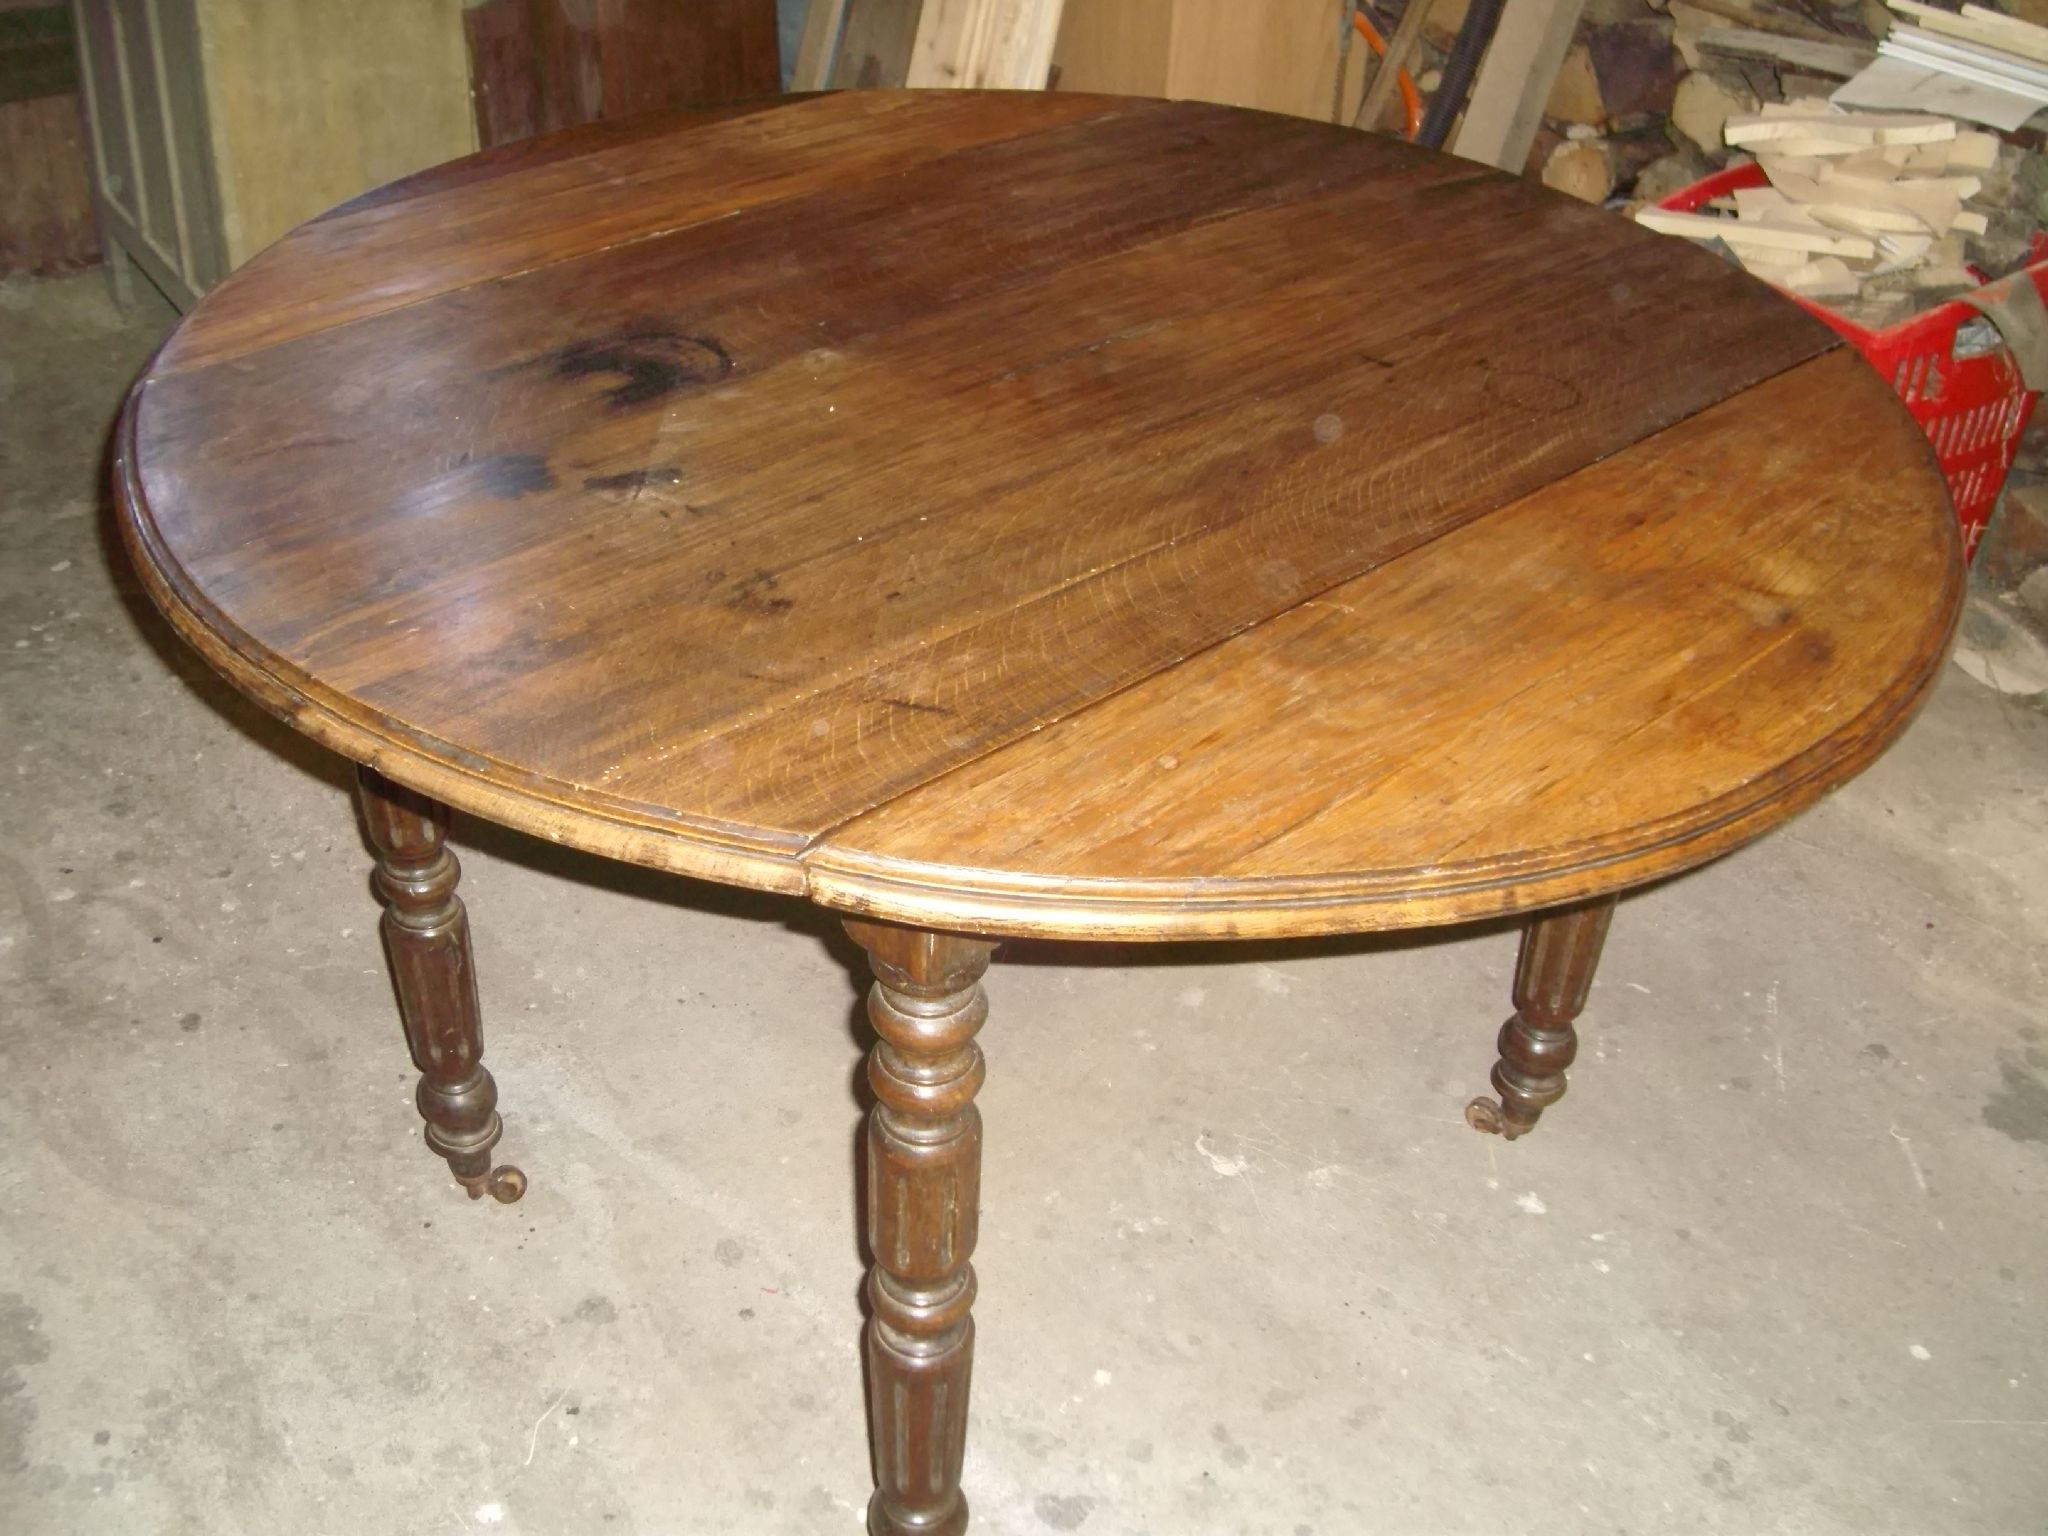 Le bon coin table ronde en bois - Relooker table en bois ...